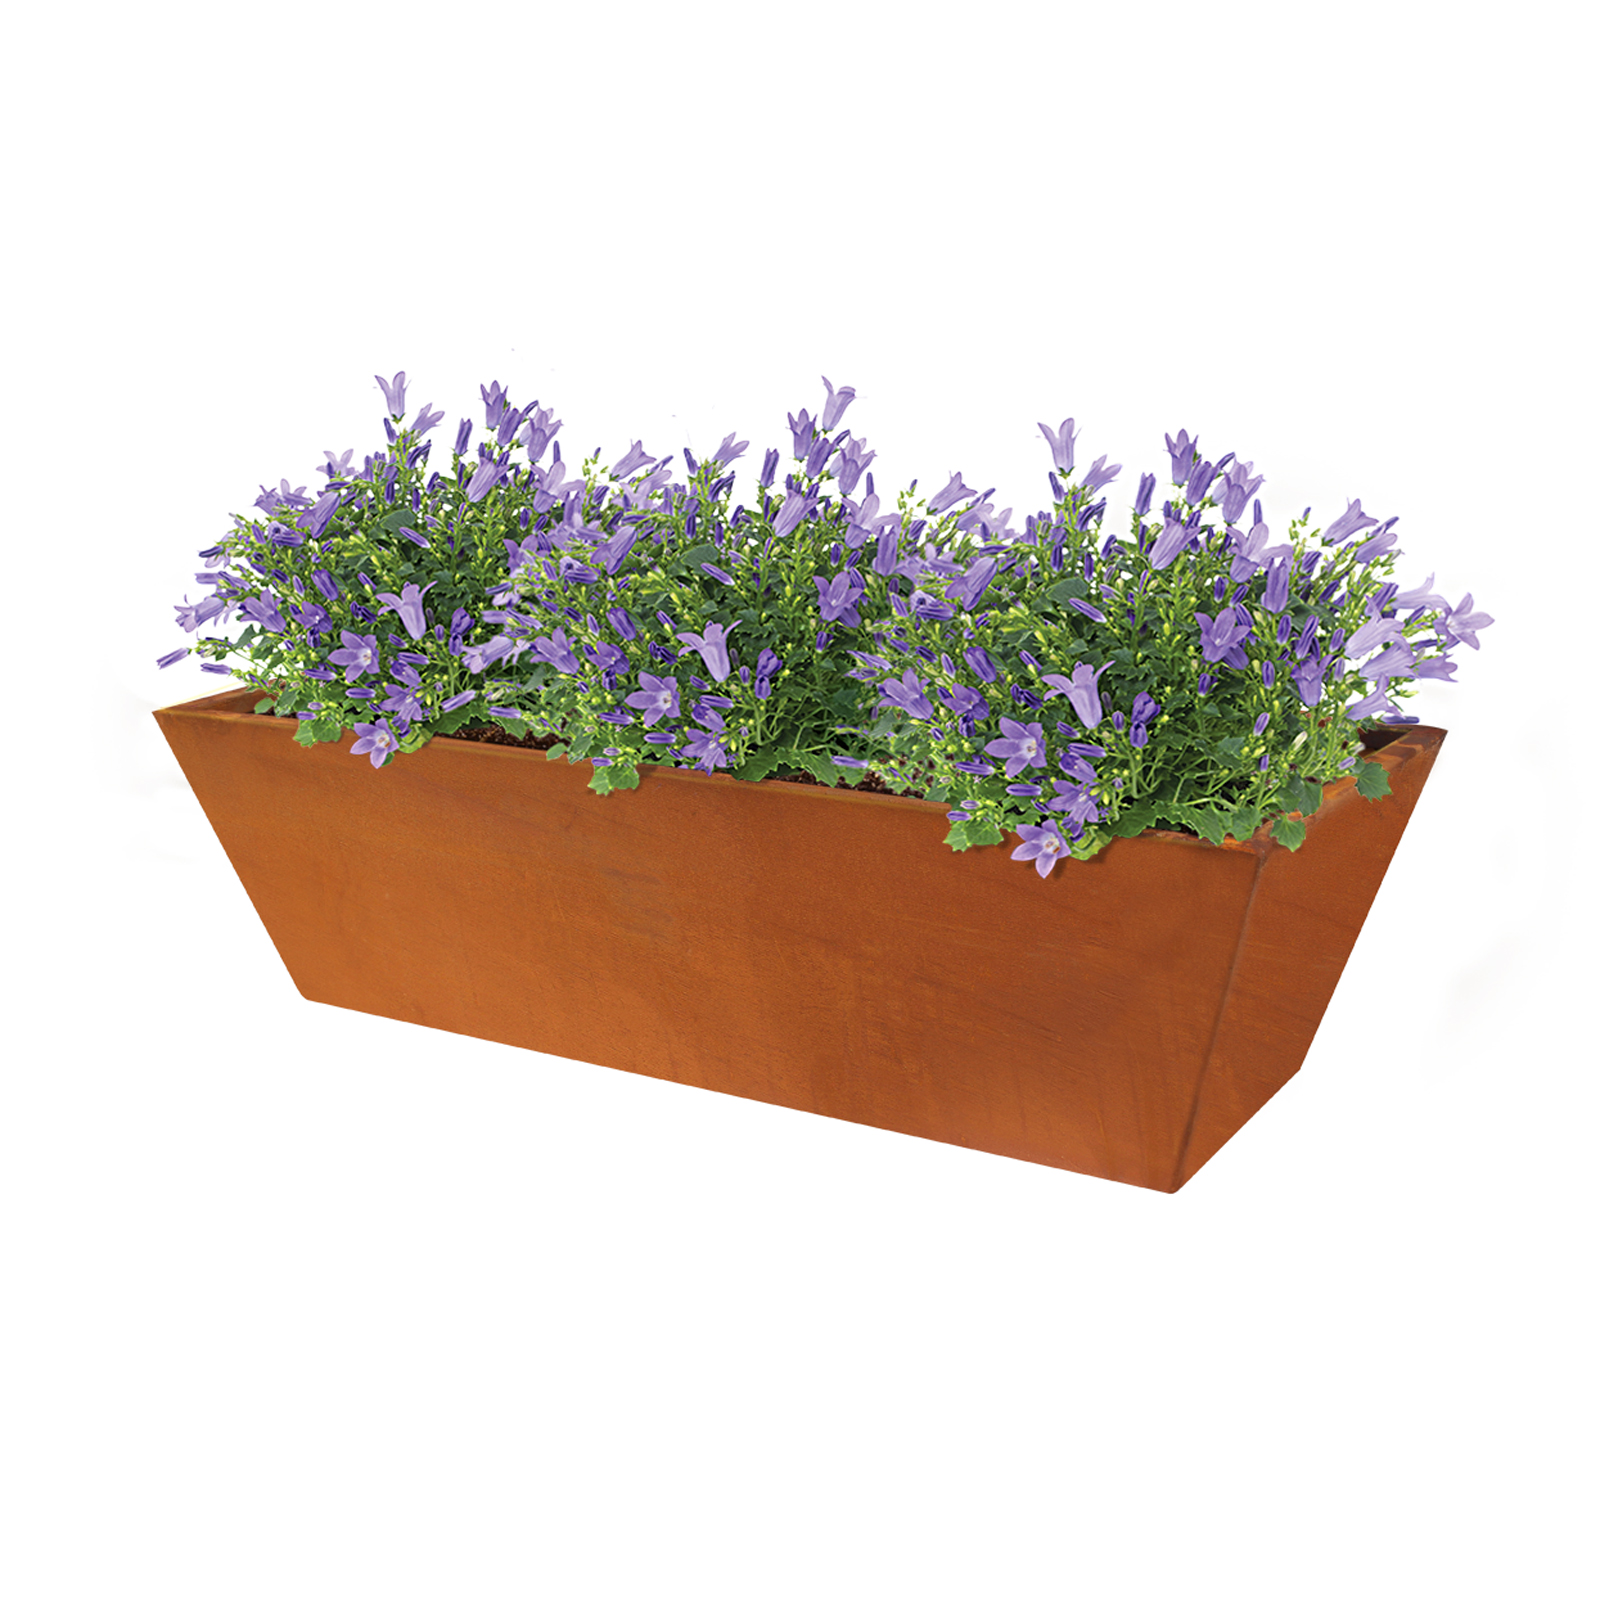 18478 casa planter with plants 800x345x230